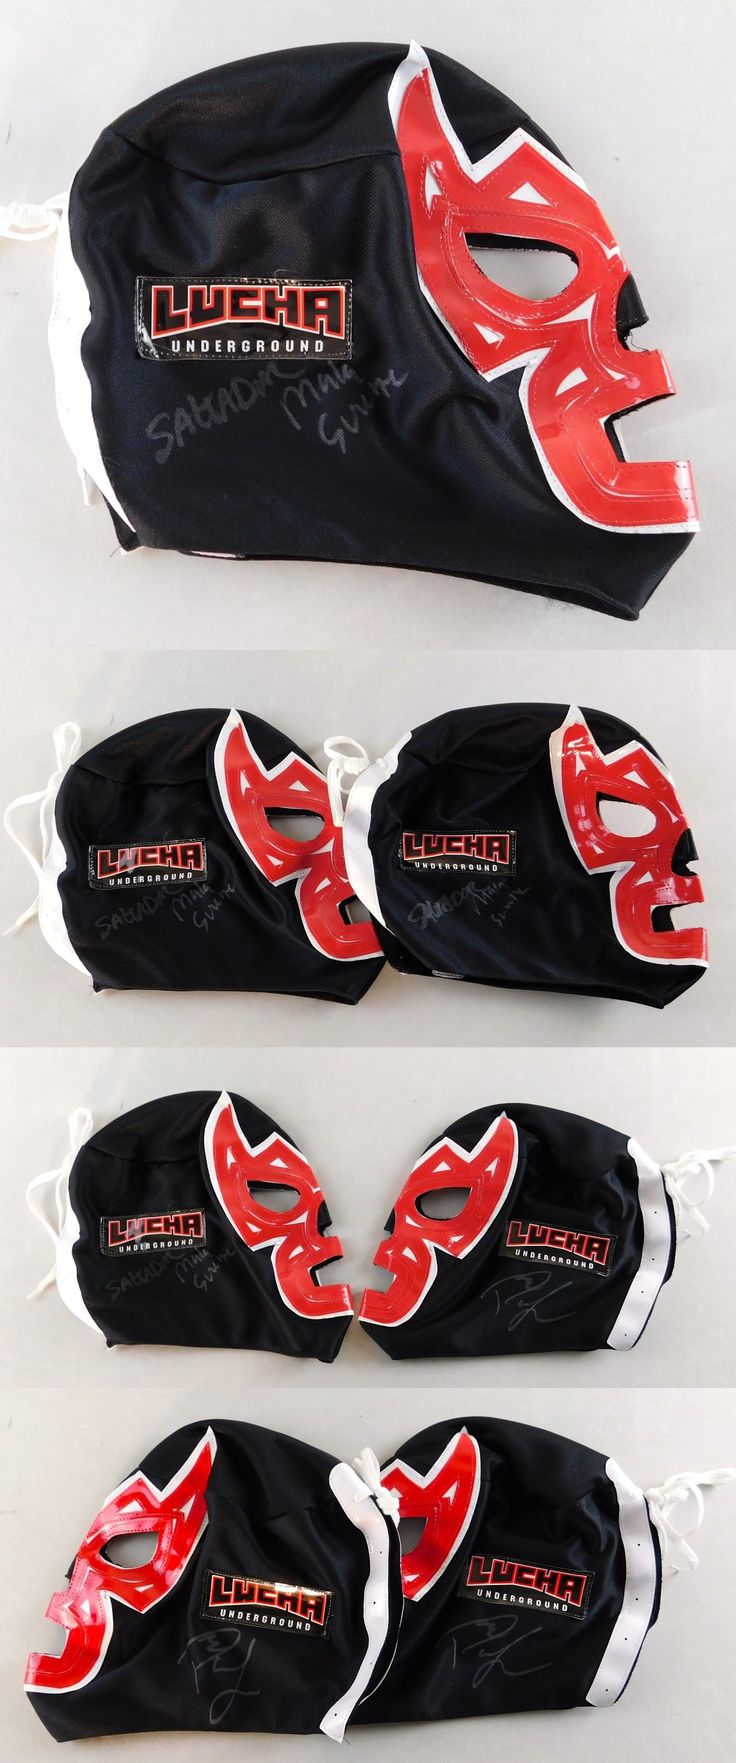 Wrestling 2902: The Tribe Paul London Saltador Autographed Lucha Underground Adult Mask Aaa Wwe -> BUY IT NOW ONLY: $59.99 on eBay!